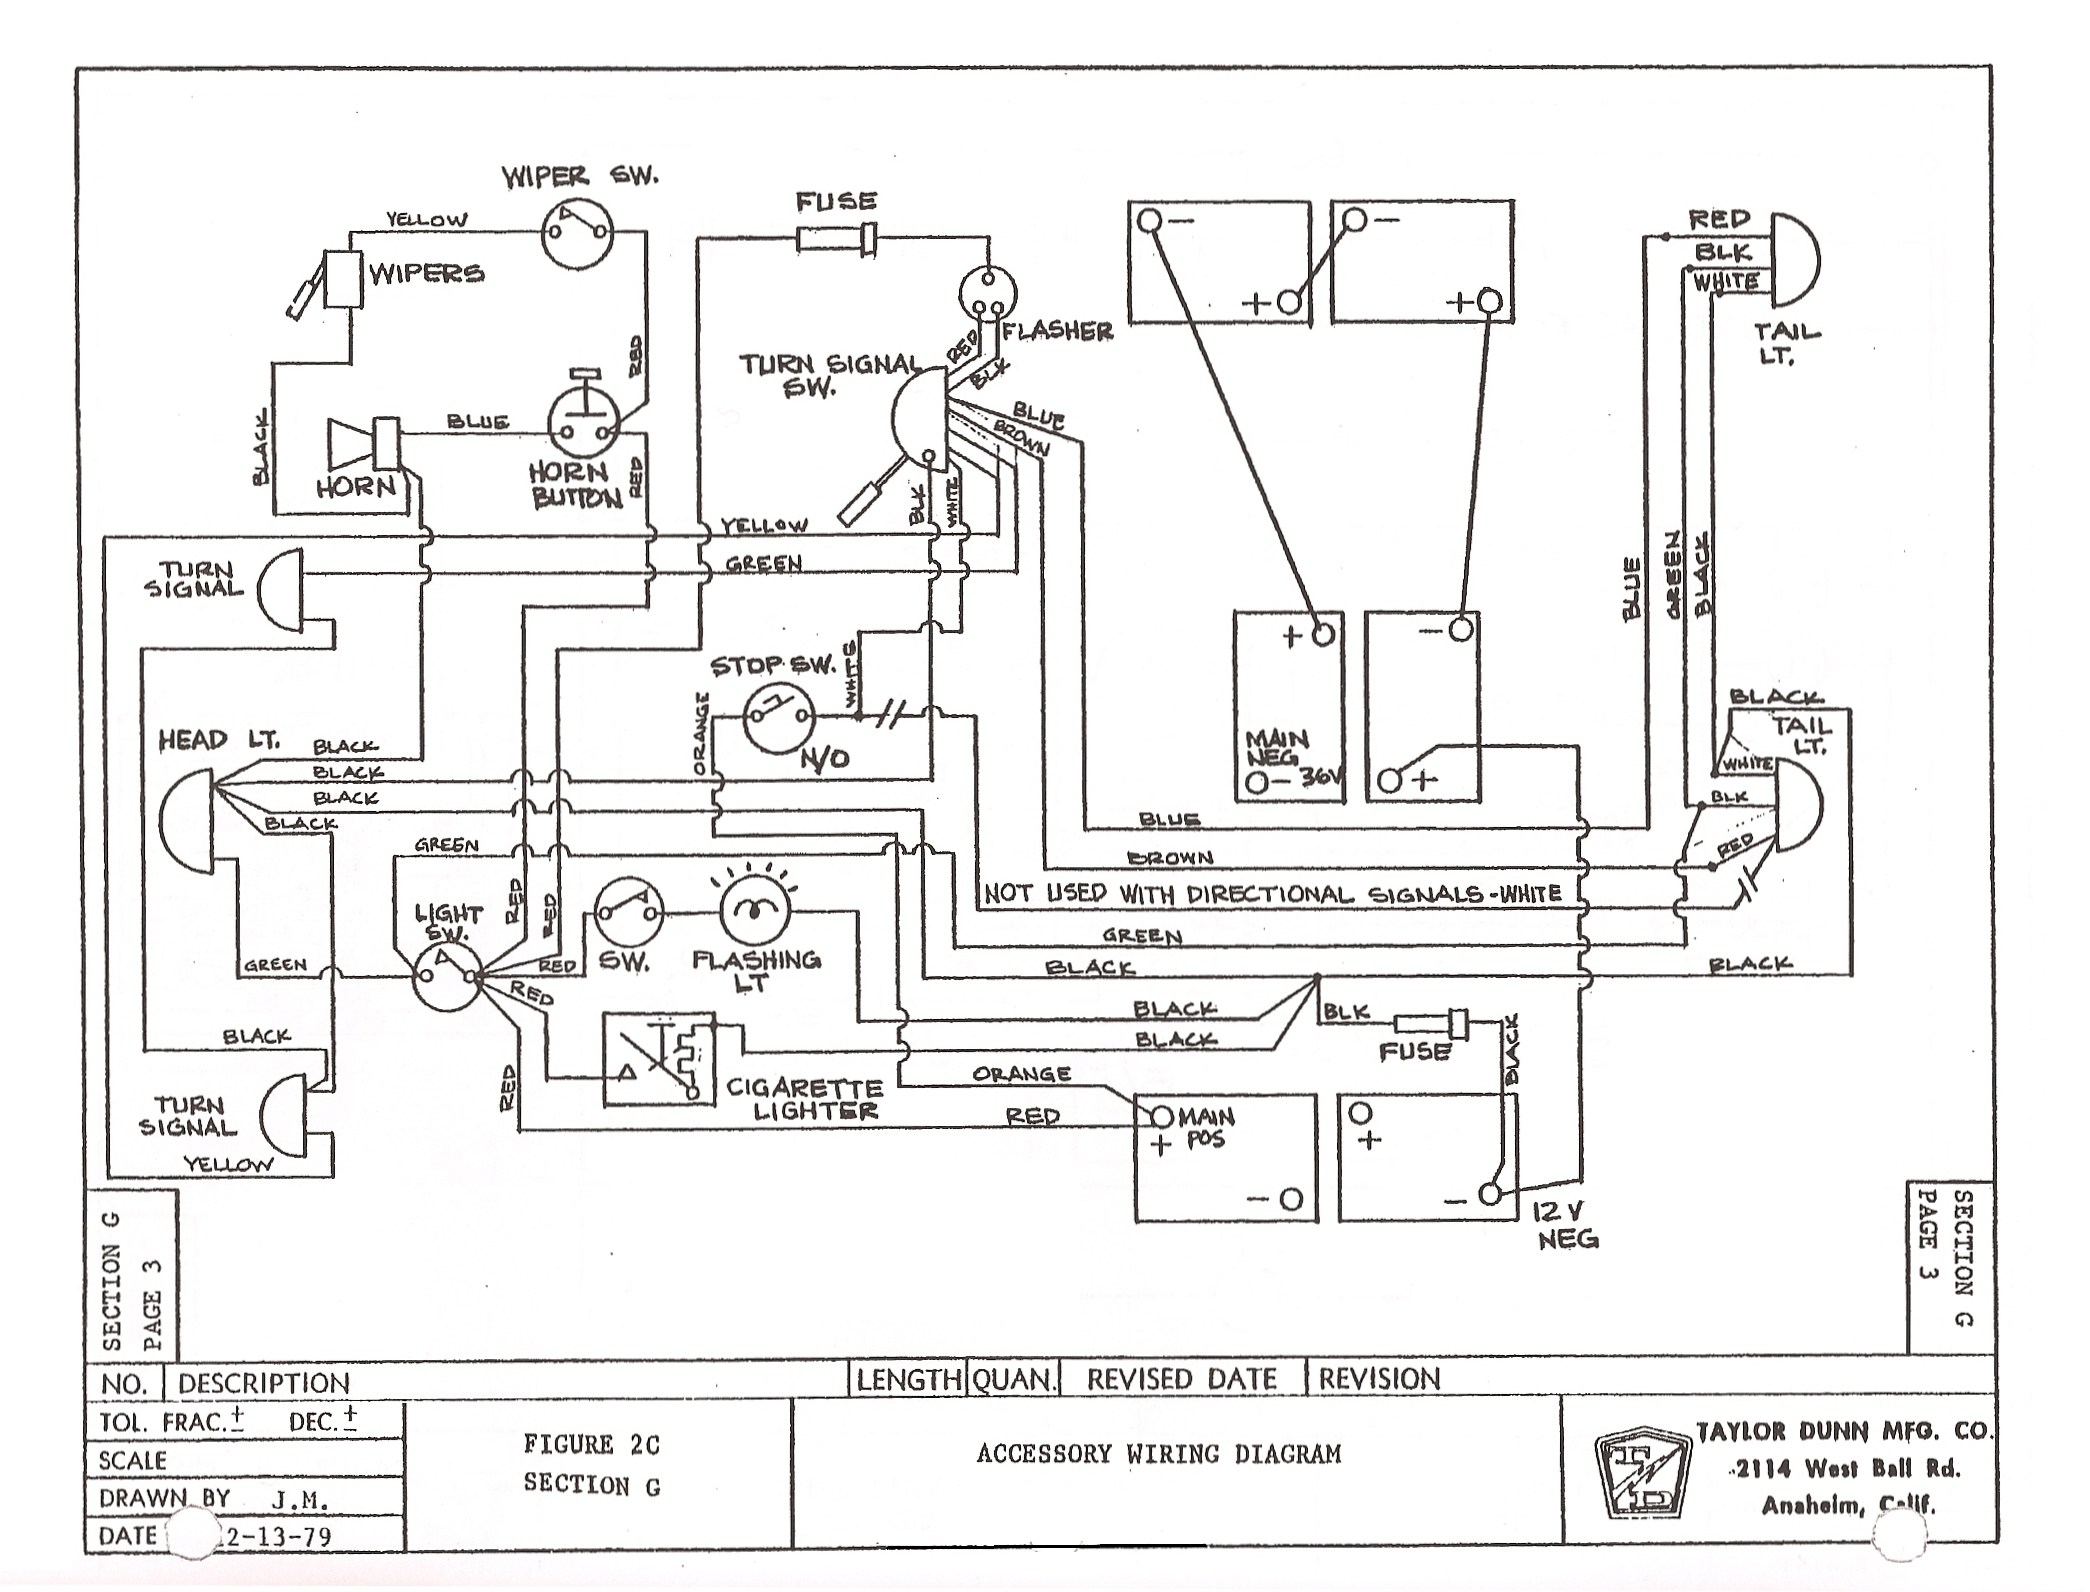 wiring diagram 1999 ezgo golf cart get free image about wiring diagram 36V Golf  Cart Wiring Diagram 1995 Ezgo Golf Cart Wiring Diagram